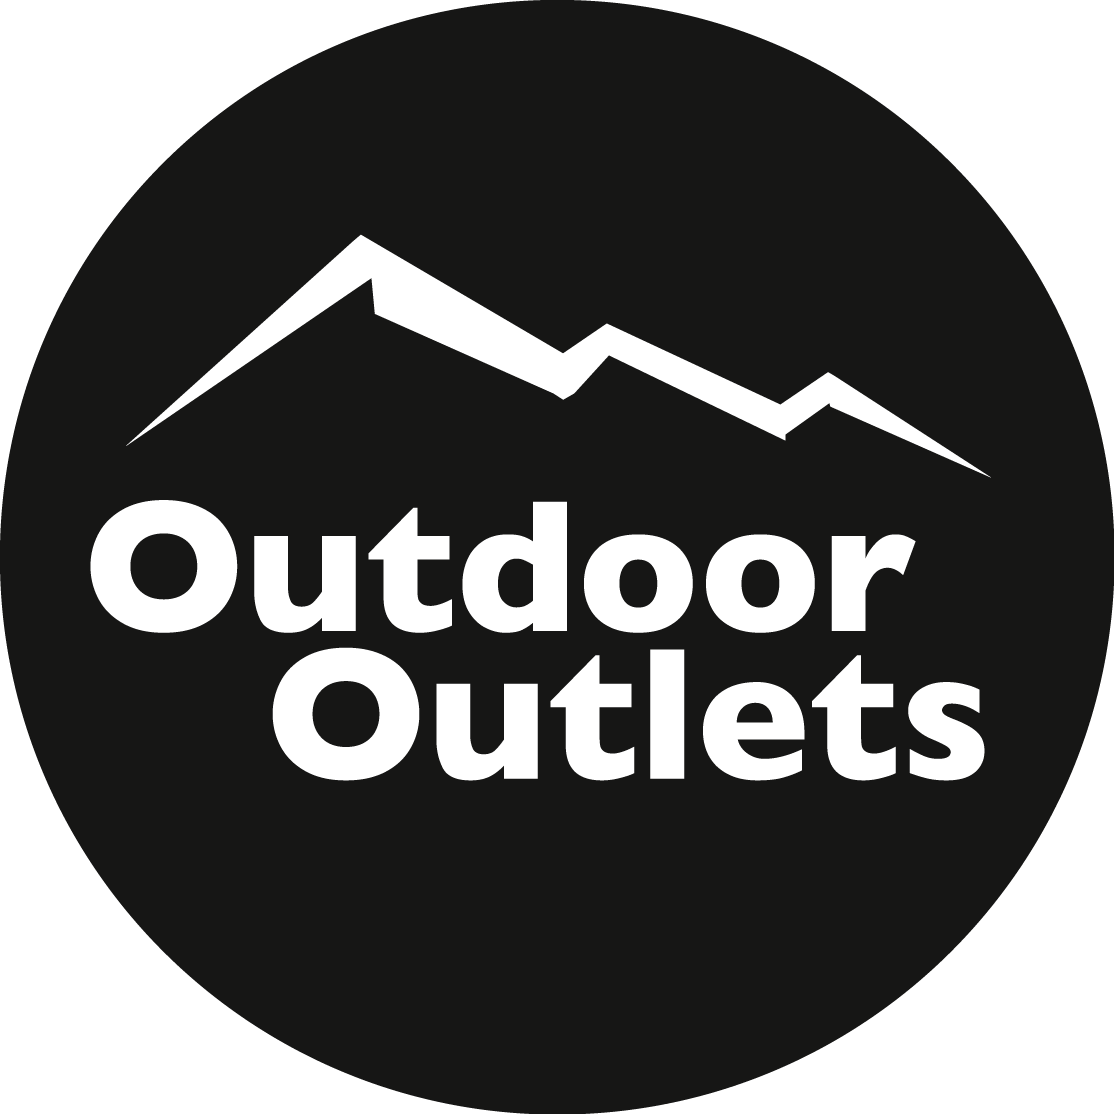 OUTDOOR_OUTLETS_full